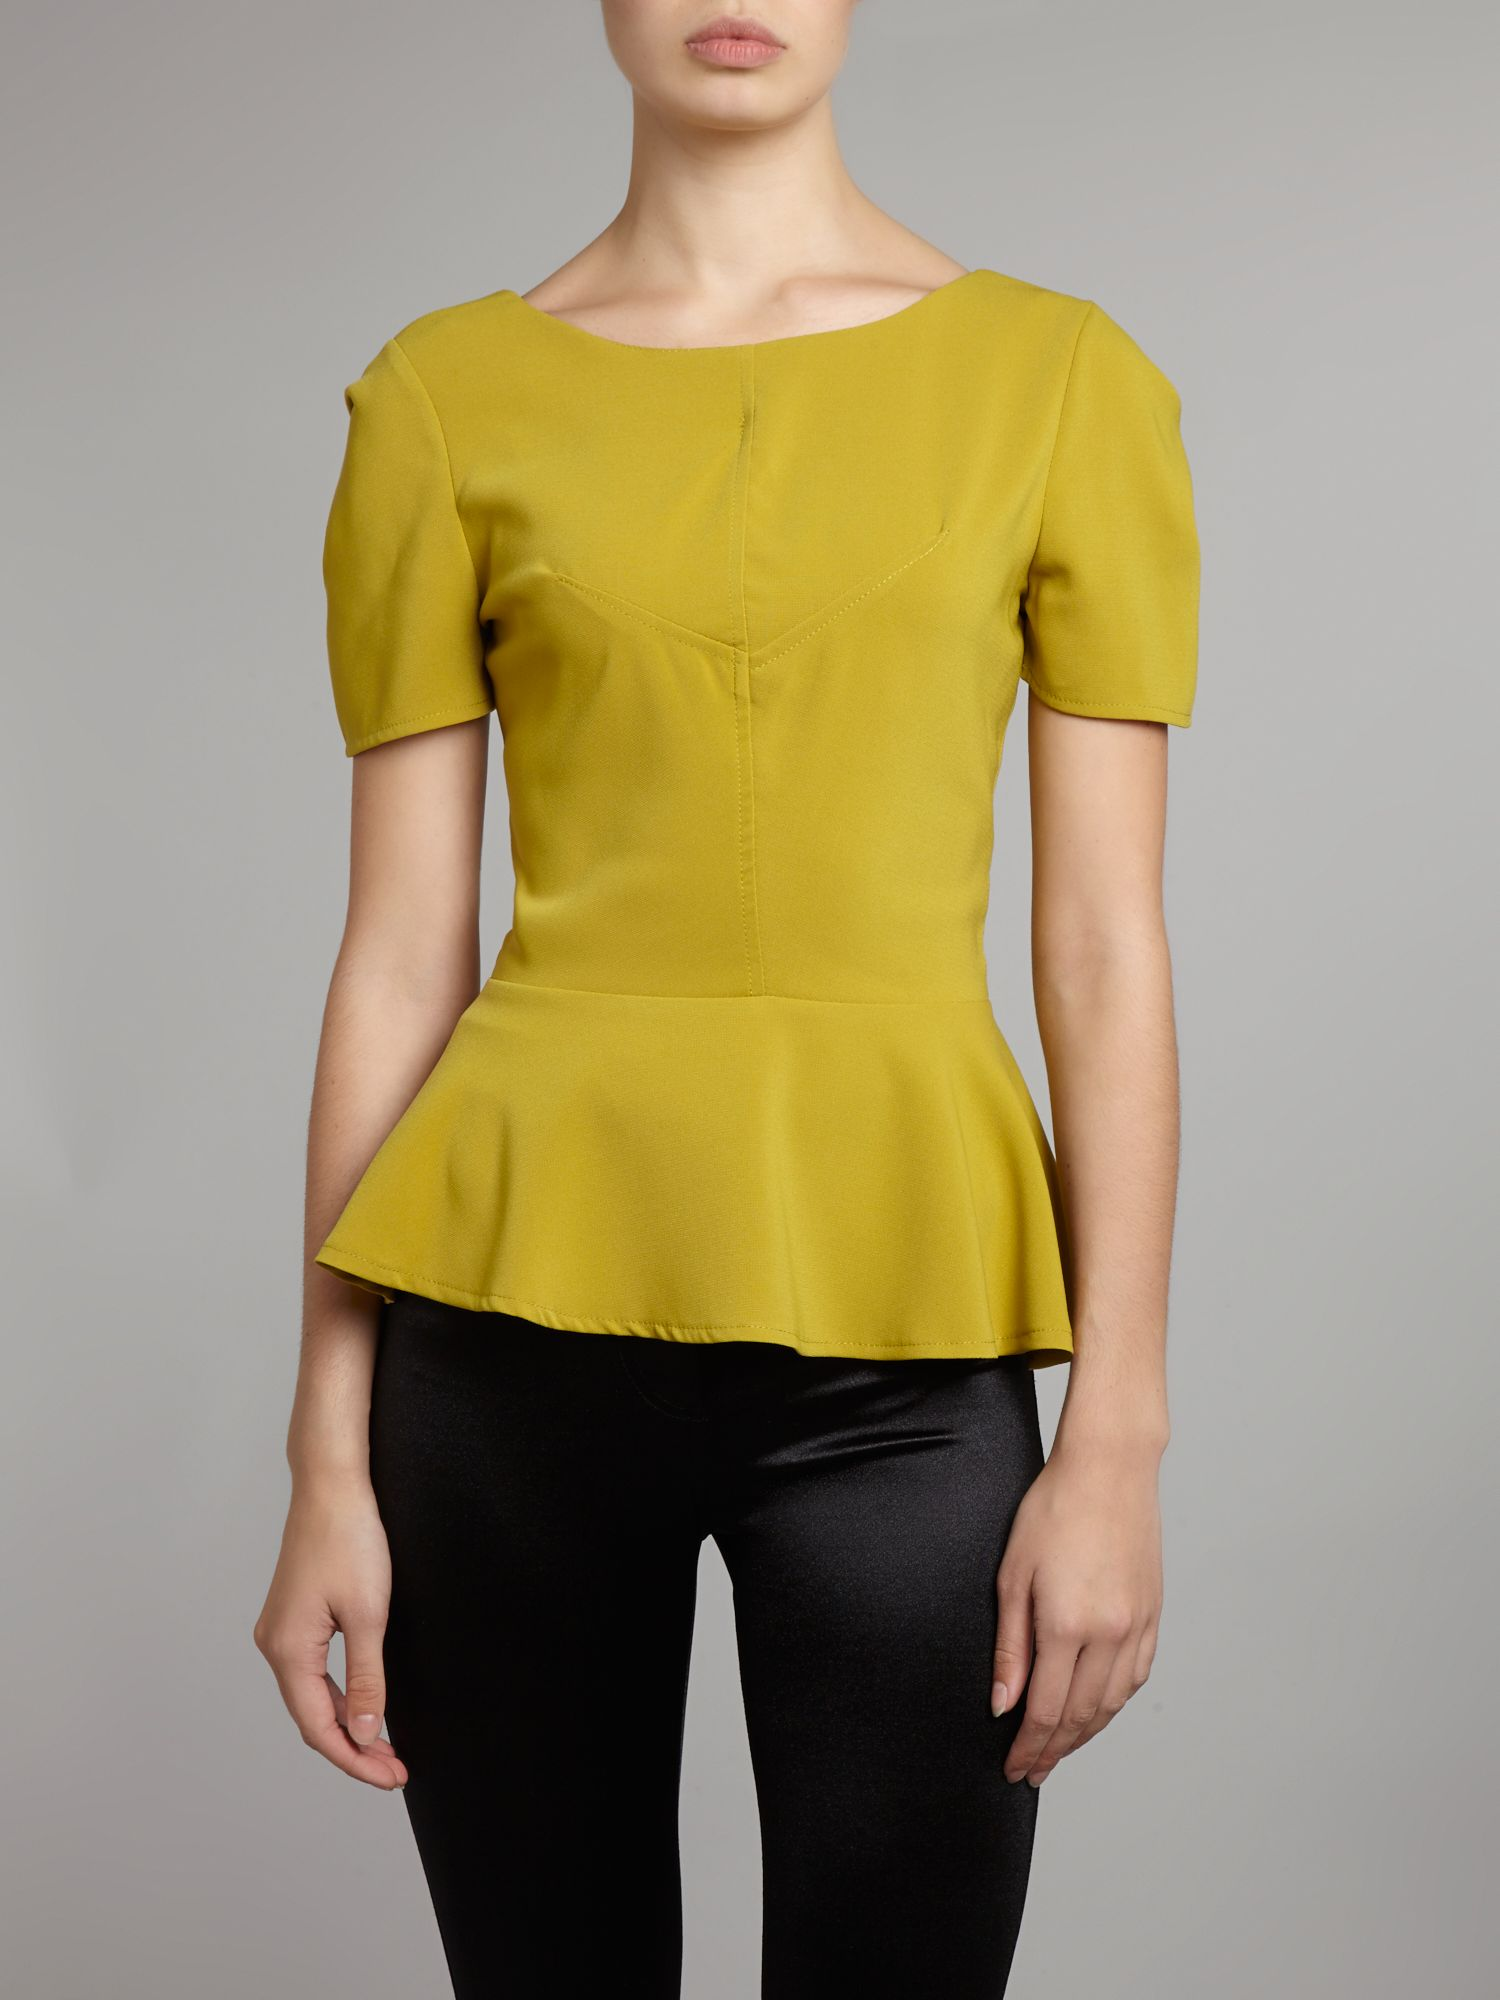 V back peplum top